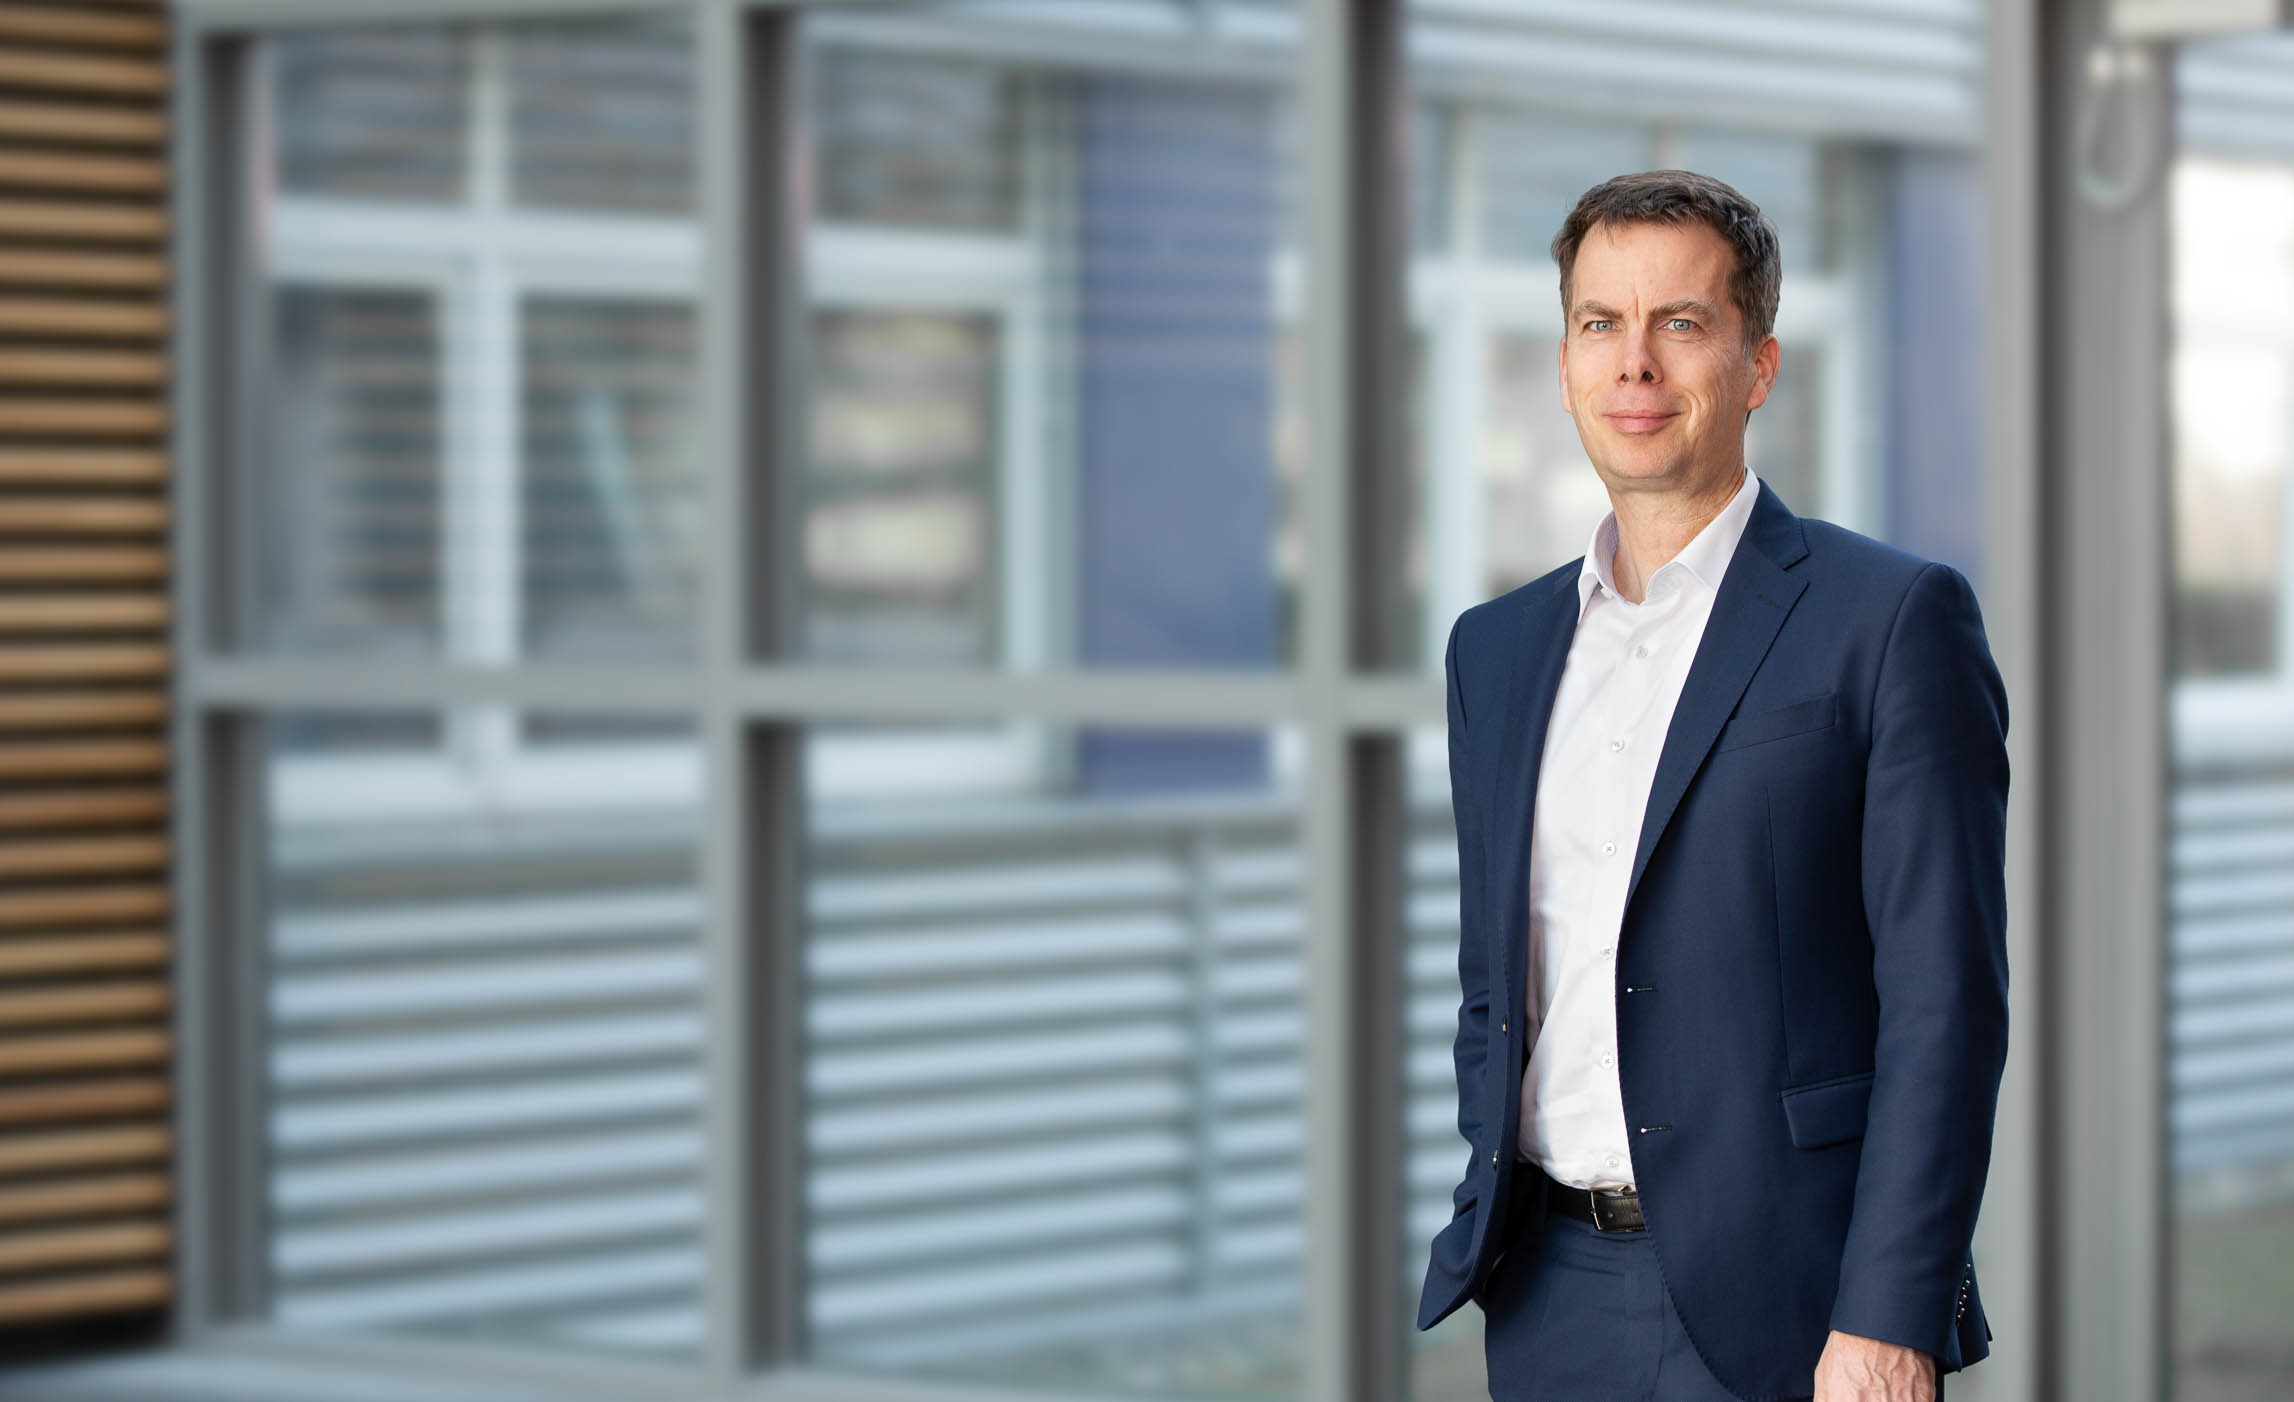 Christian Langer, Head of PD Digital Fleet Solutions